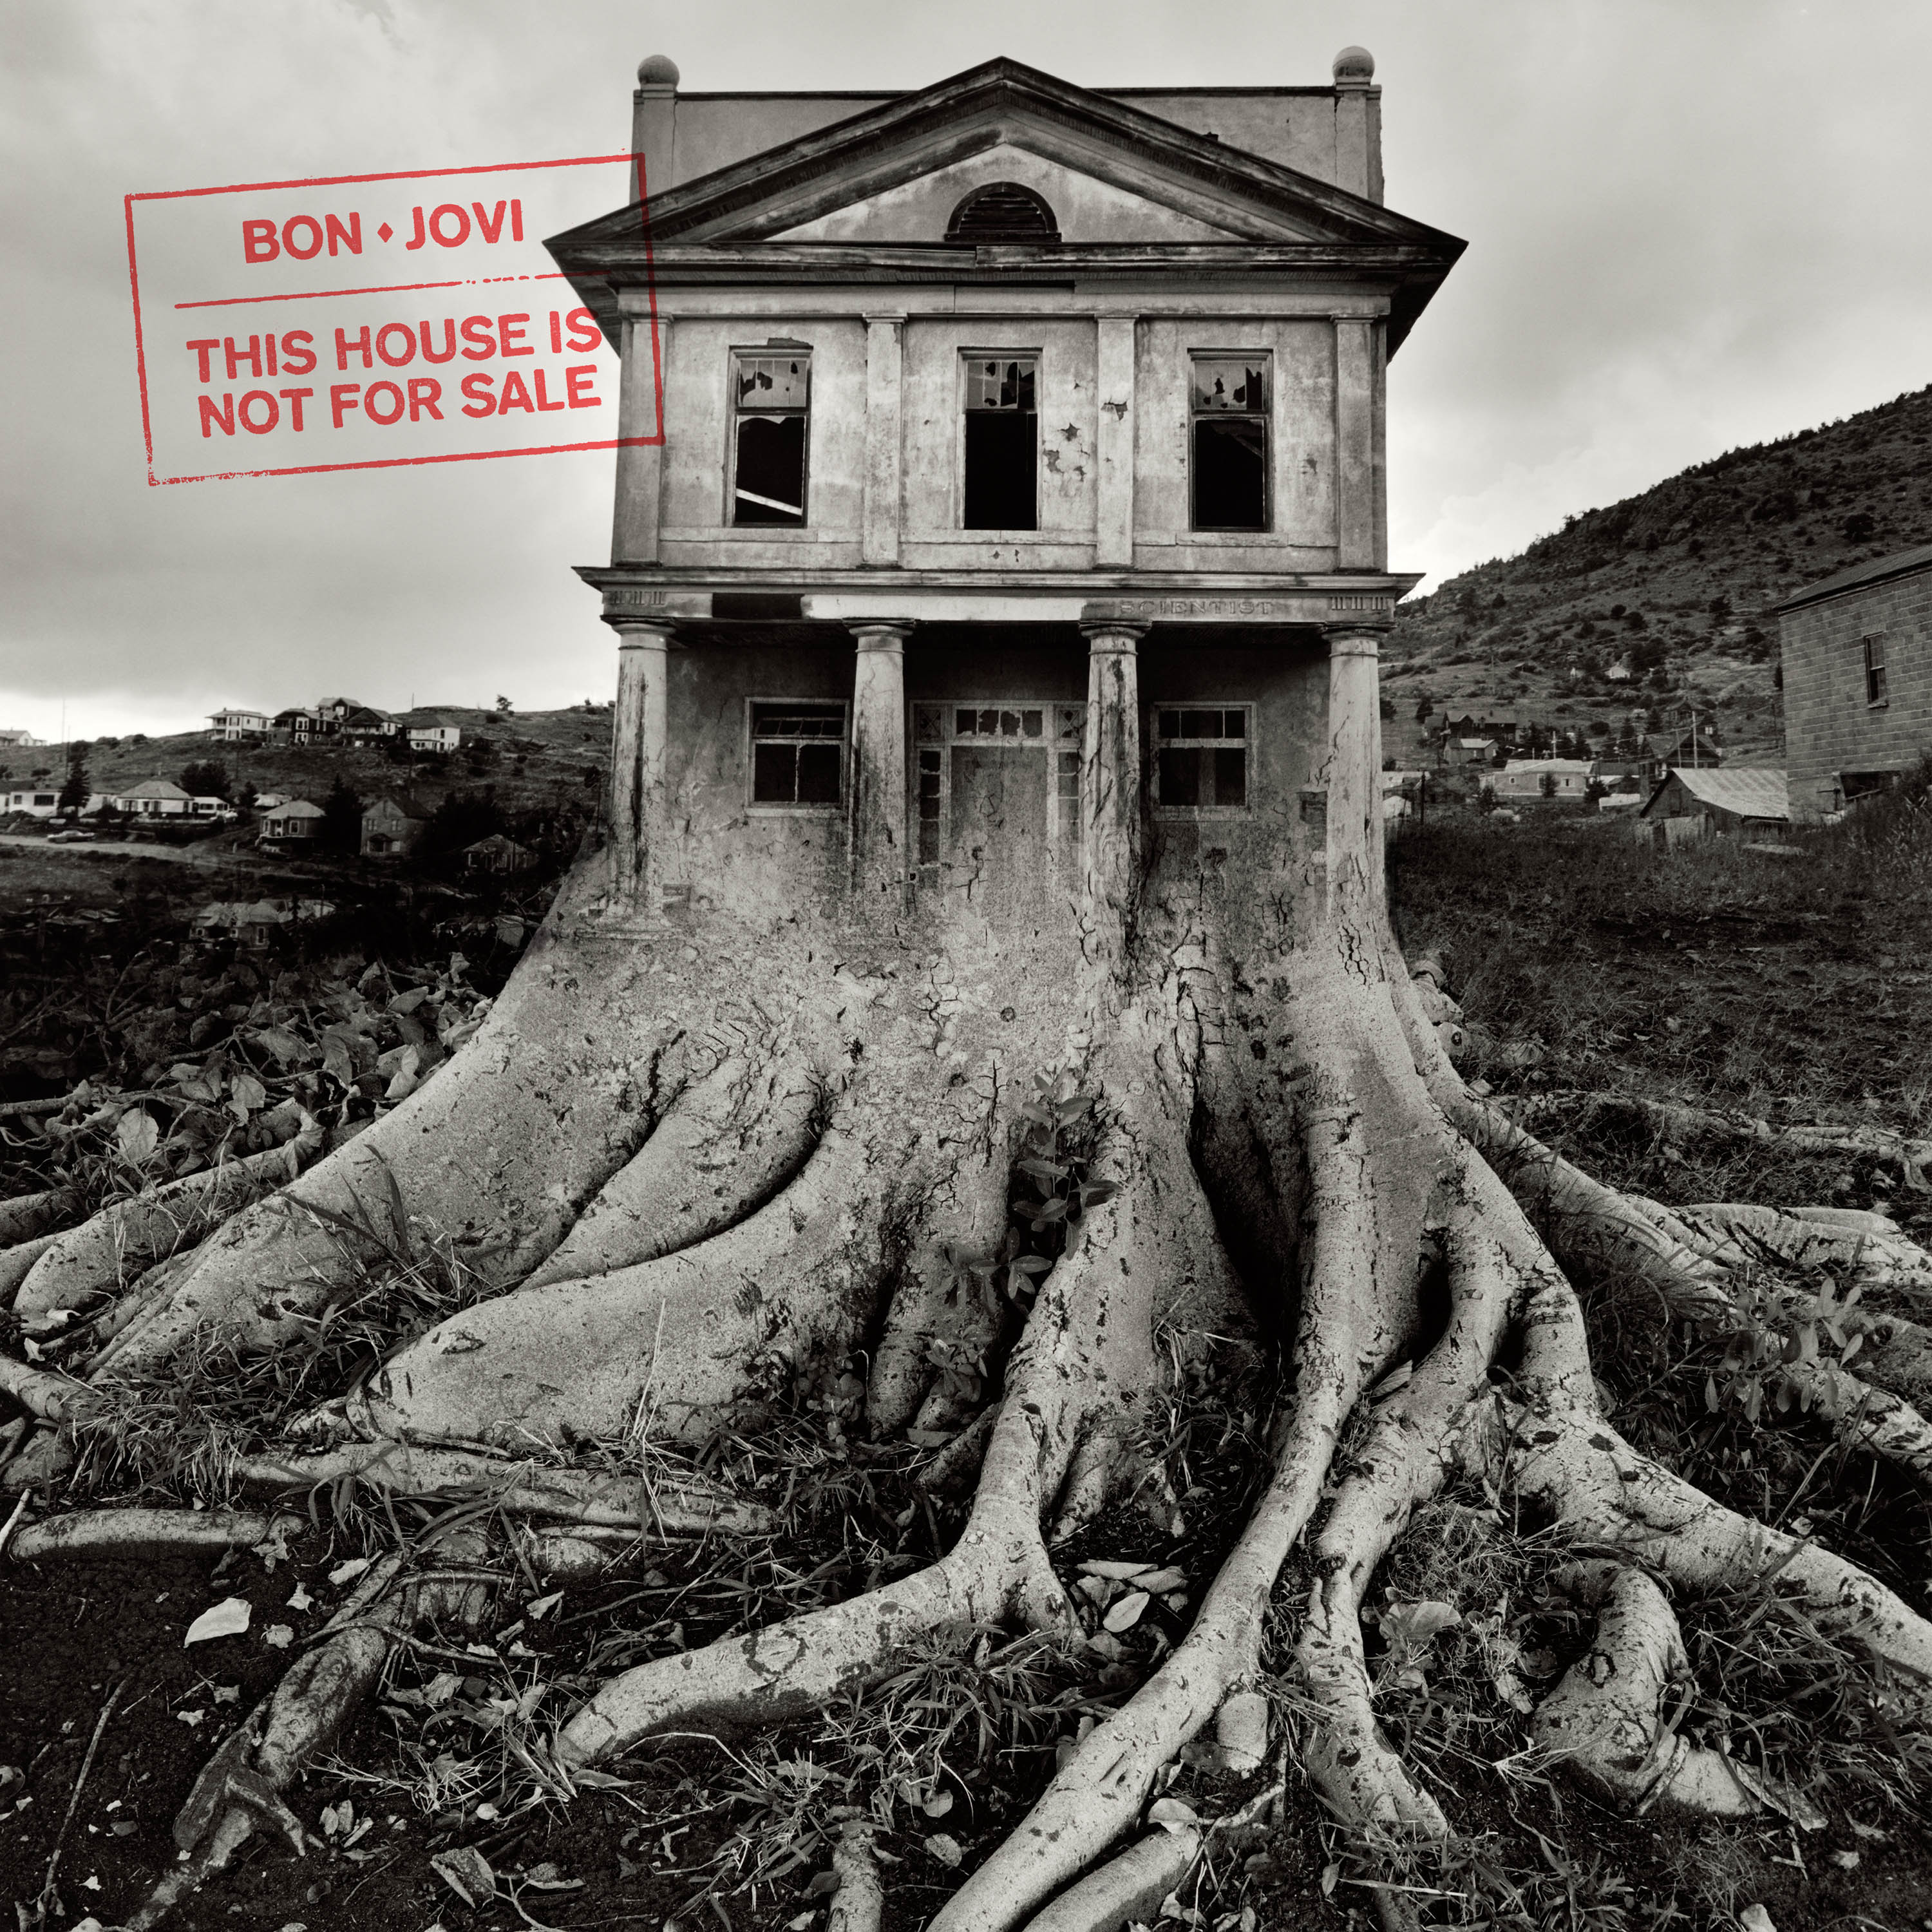 This House Is Not For Sale - Bon Jovi - Musik -  - 0602557072228 - 25/11-2016